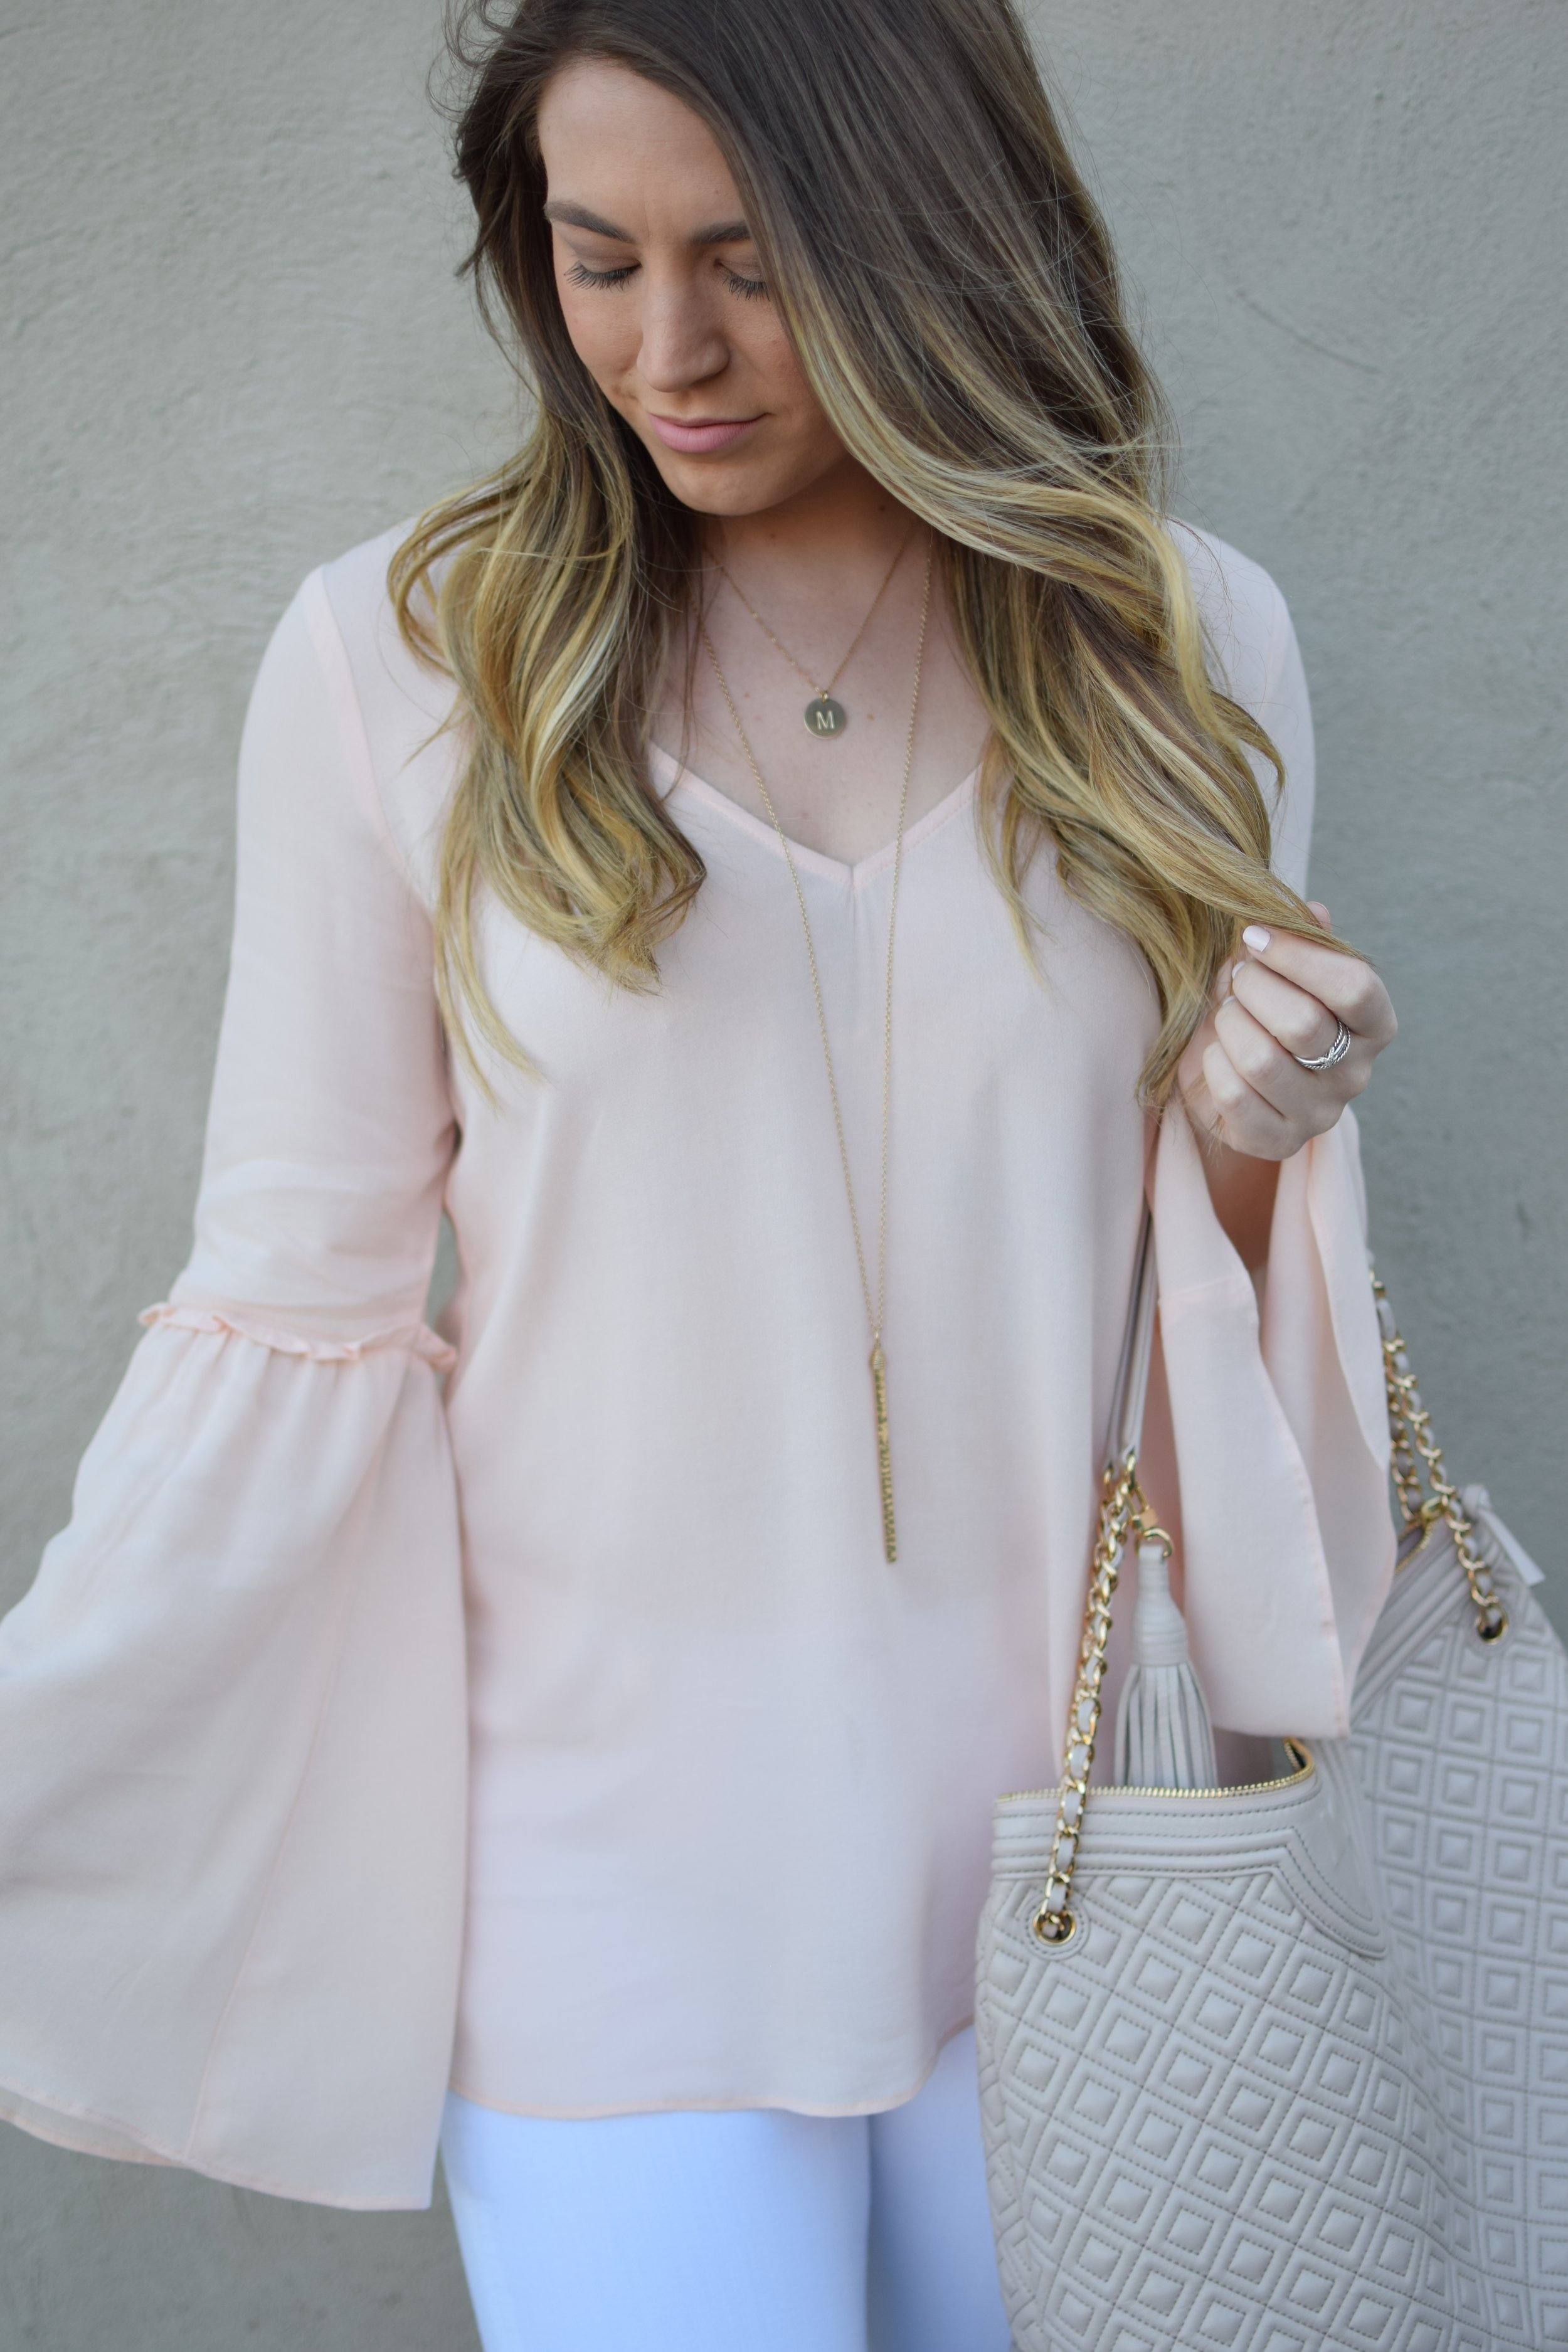 blush bell sleeve top / nashelle layered necklaces / spring outfit idea / balayage summer hair